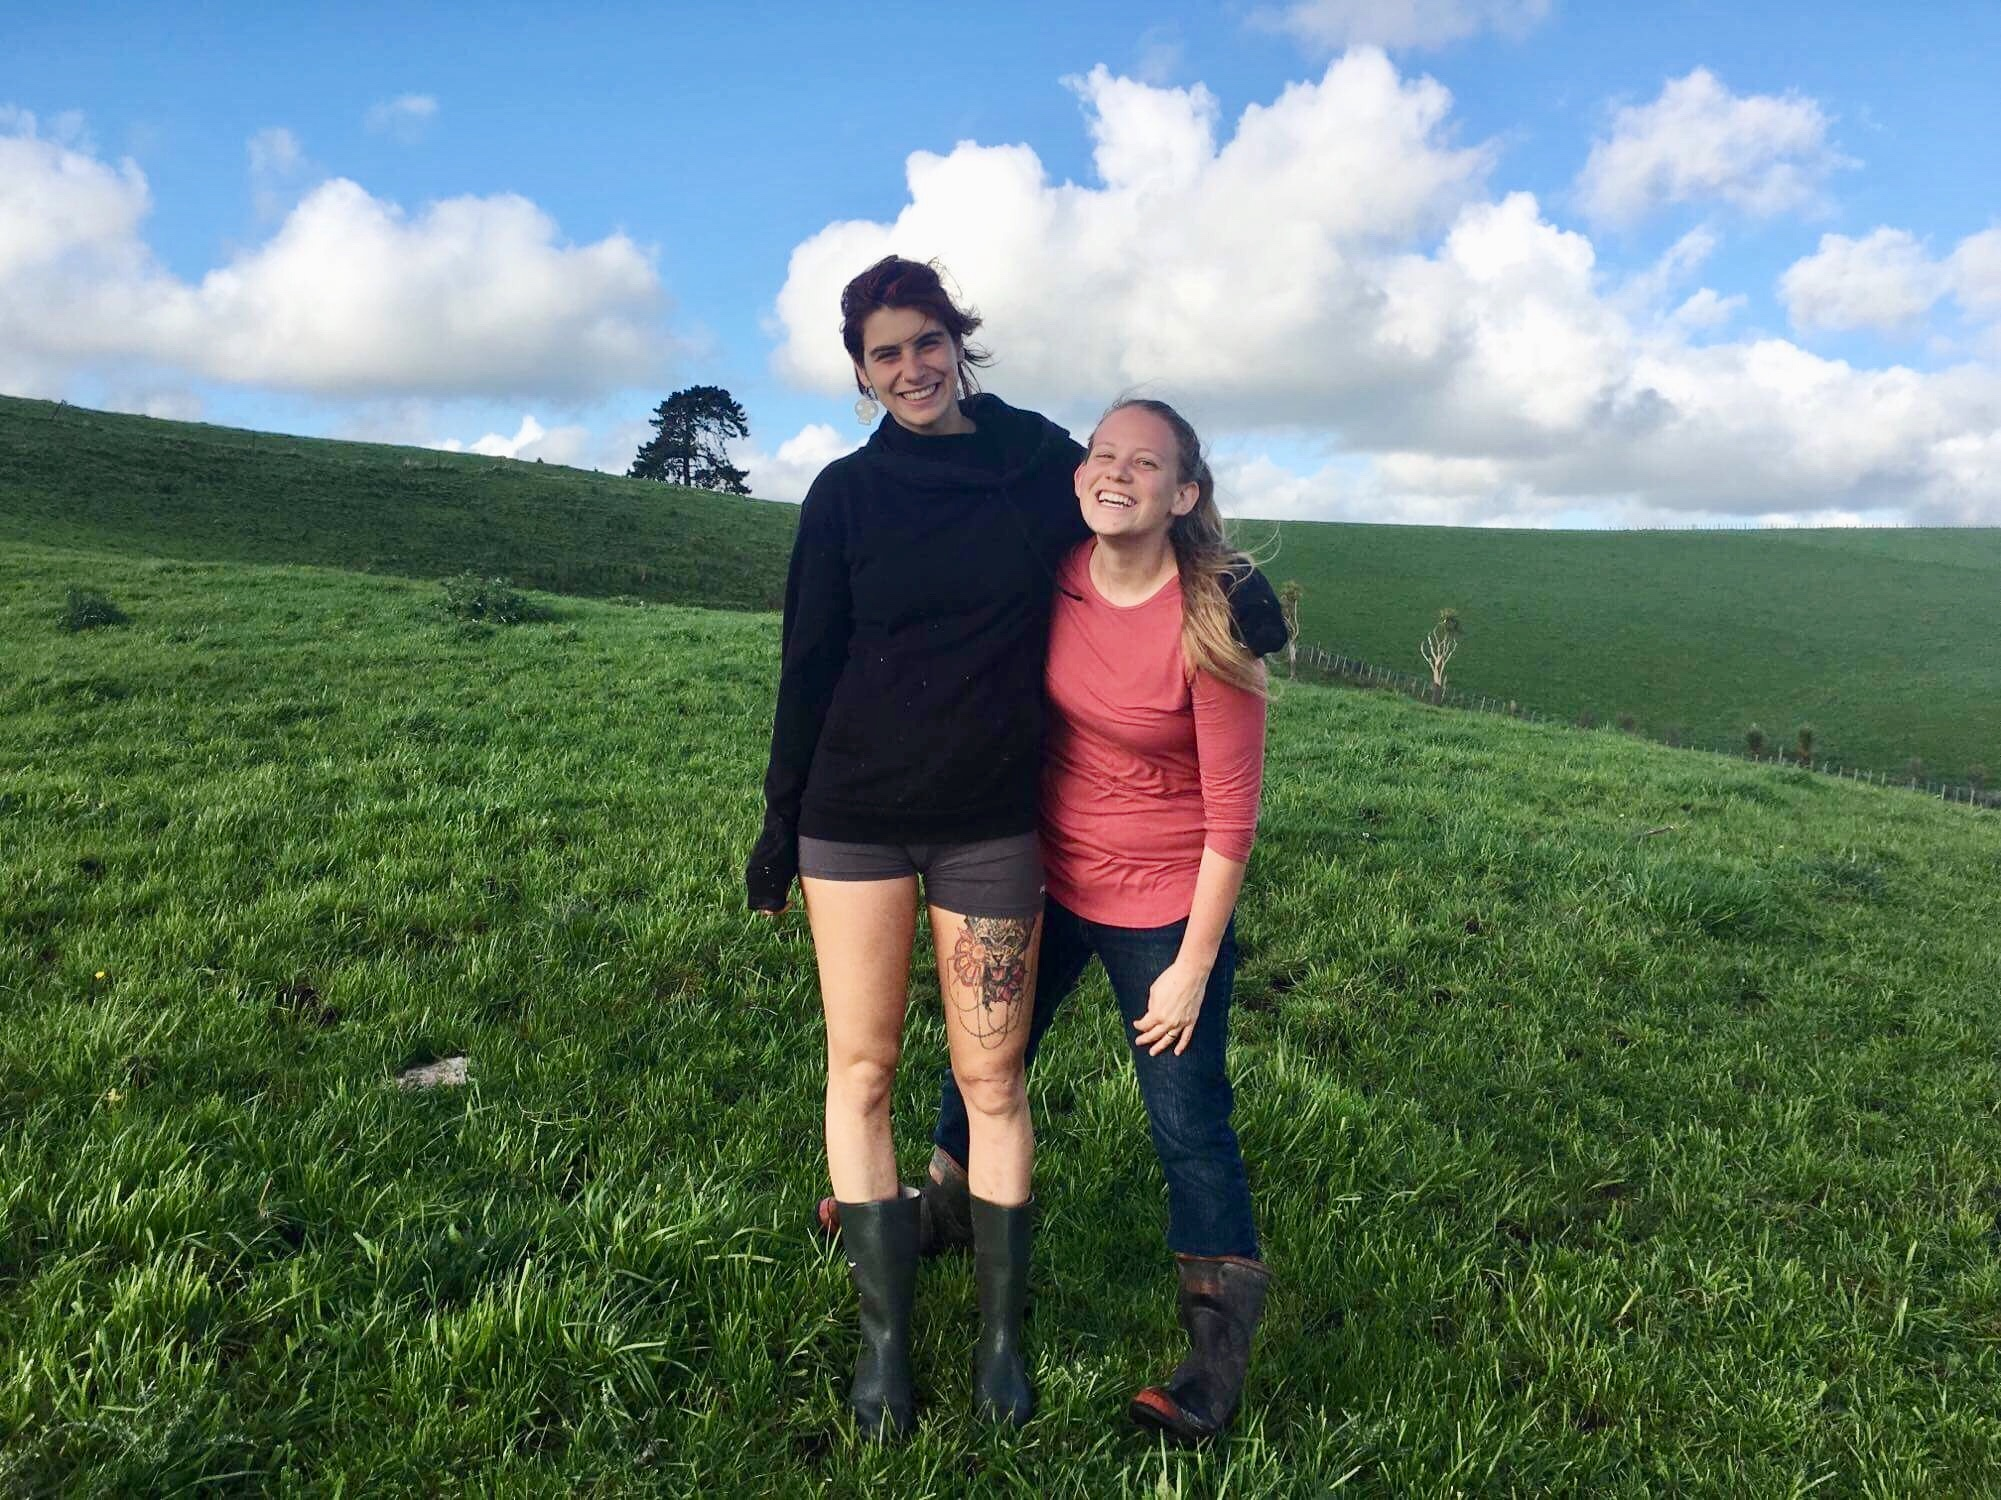 Ever wondered what it might be like to WWOOF on Mingiroa Farm? Emily Damgali (Maine, USA) shares her thoughts on life on the farm in the guest post below.